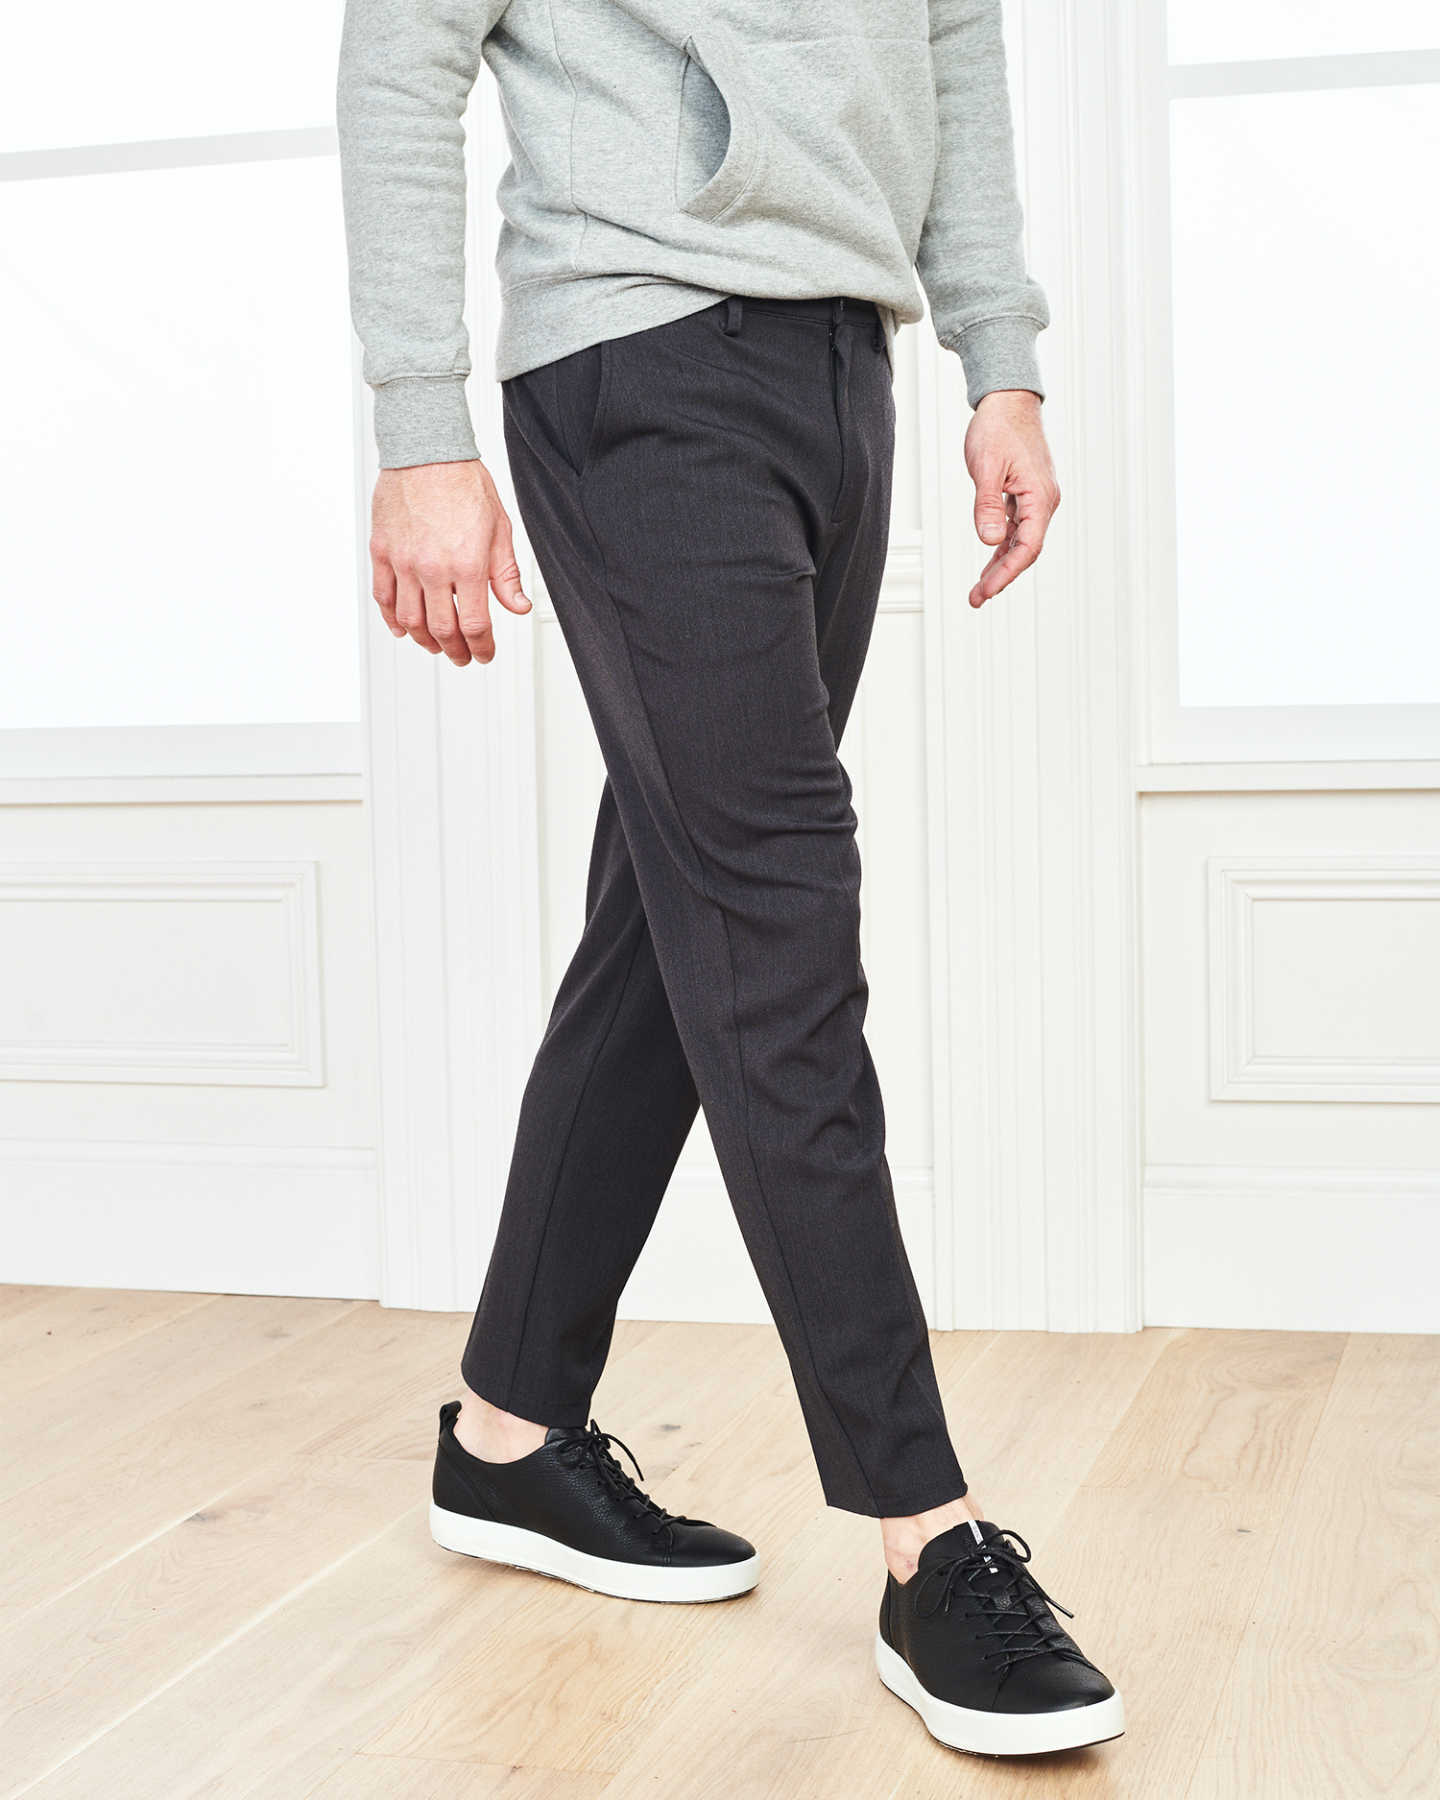 Ultra-Stretch 24/7 Dress Pant - Dark Charcoal